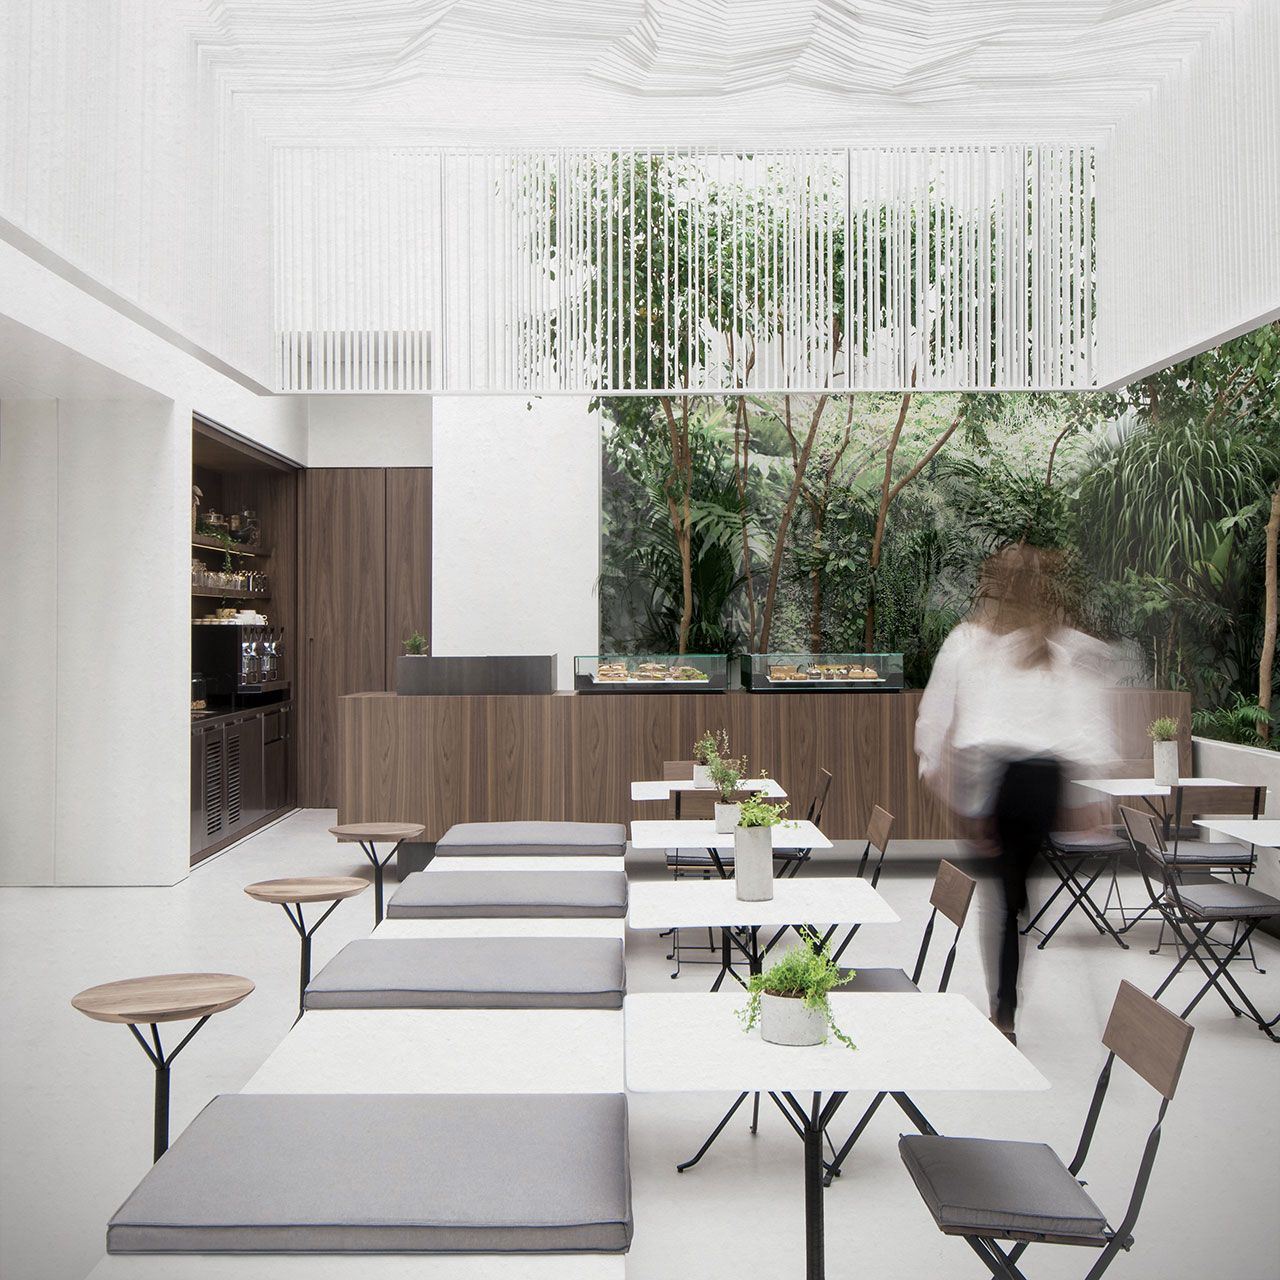 The new cycladic art museum shop u café in athens greece by kois